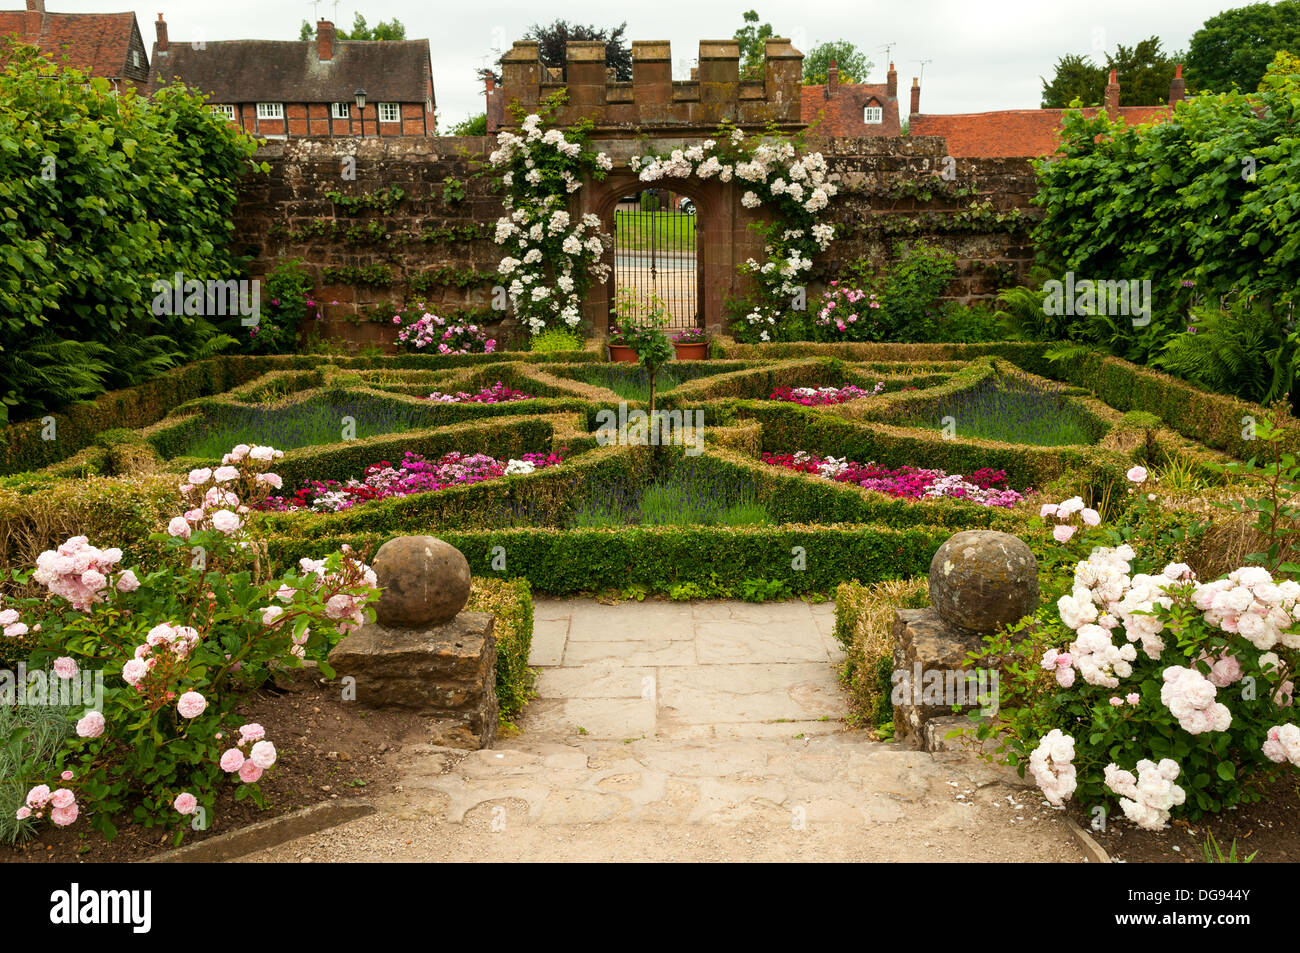 Kenilworth Castle Gardens Stock Photos & Kenilworth Castle Gardens ...